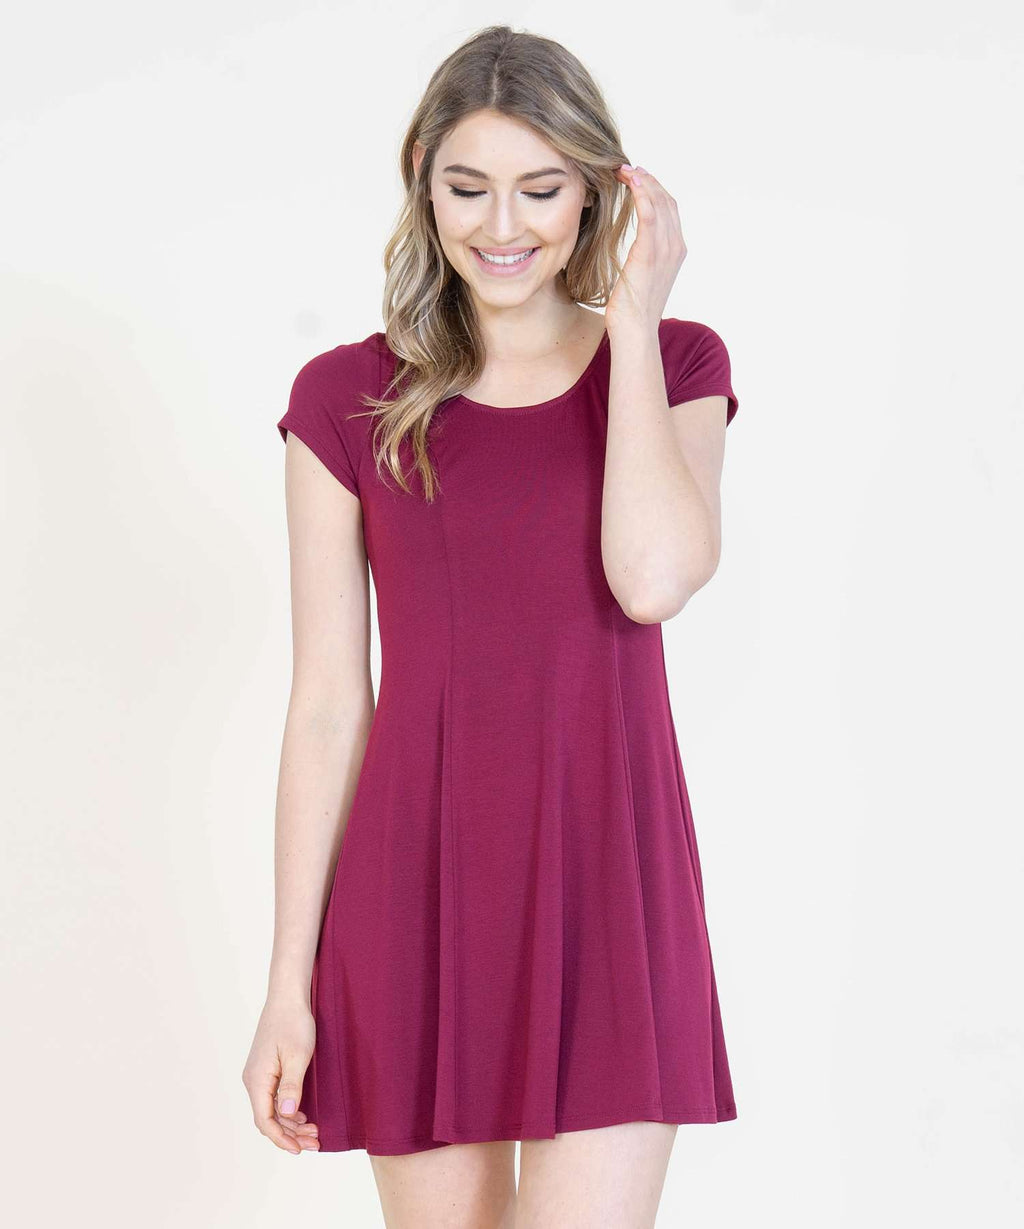 Simple Things Knit Dress